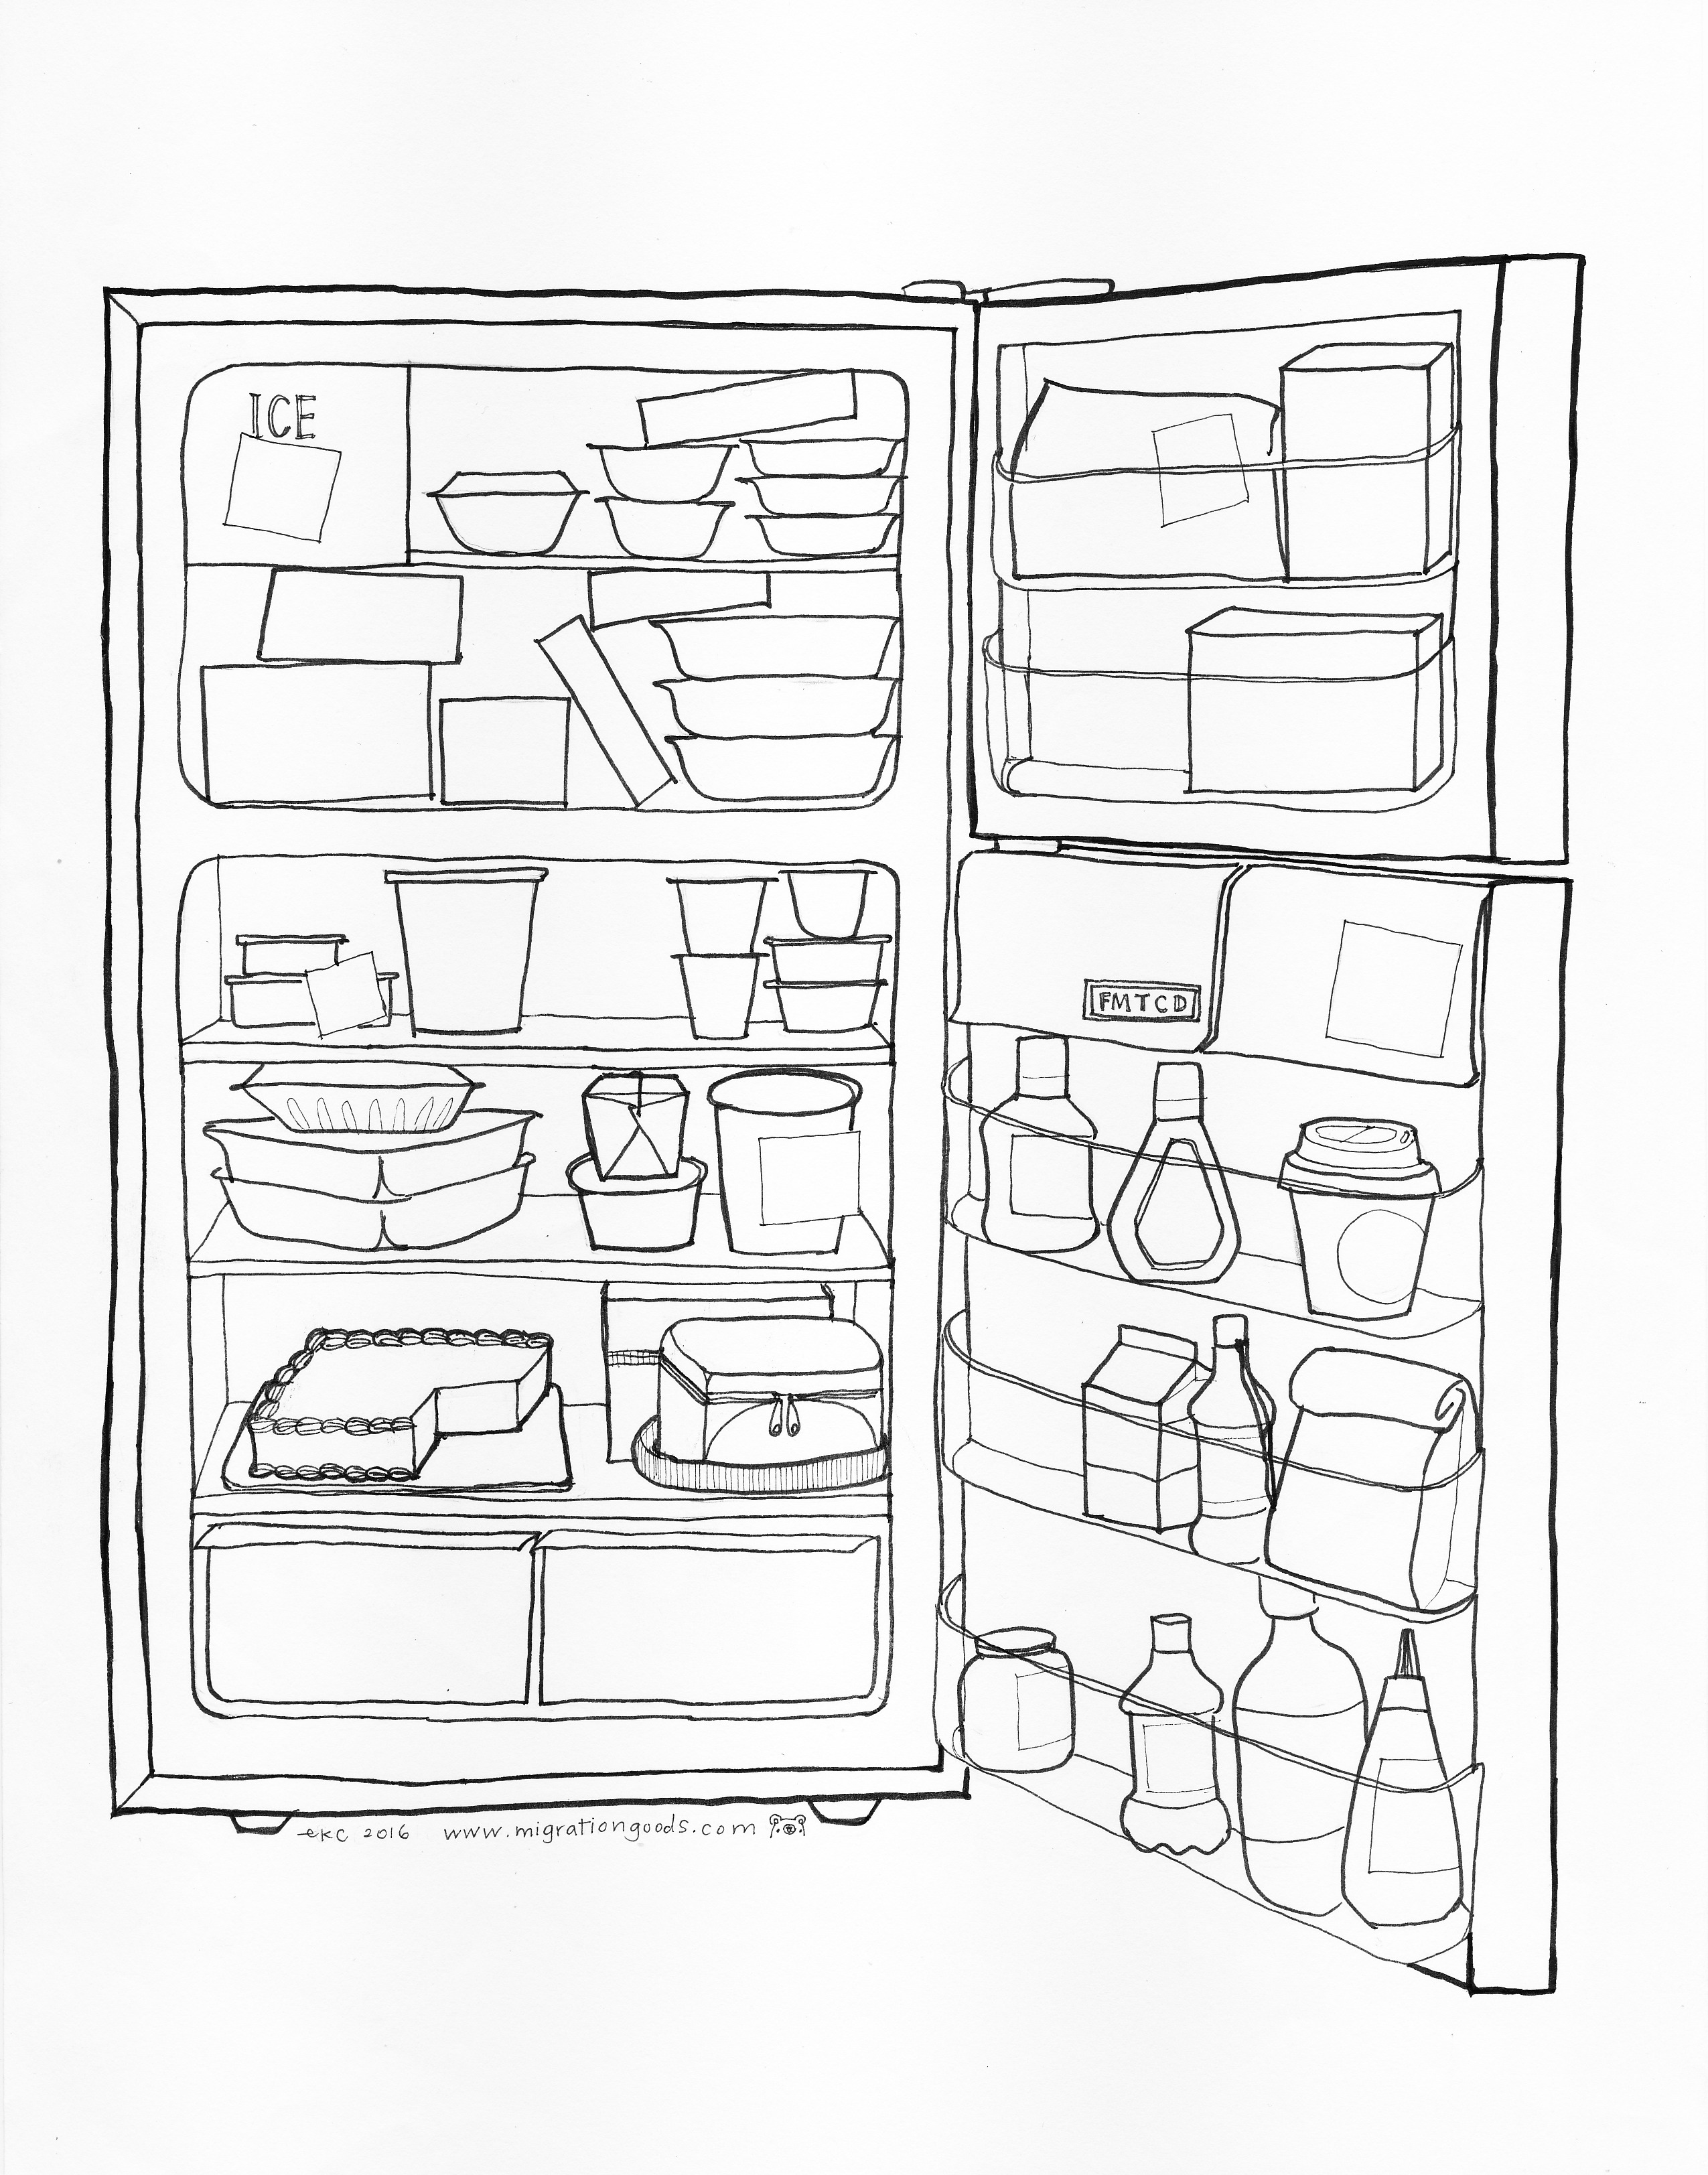 Open Fridge Drawing at GetDrawings.com | Free for personal ...